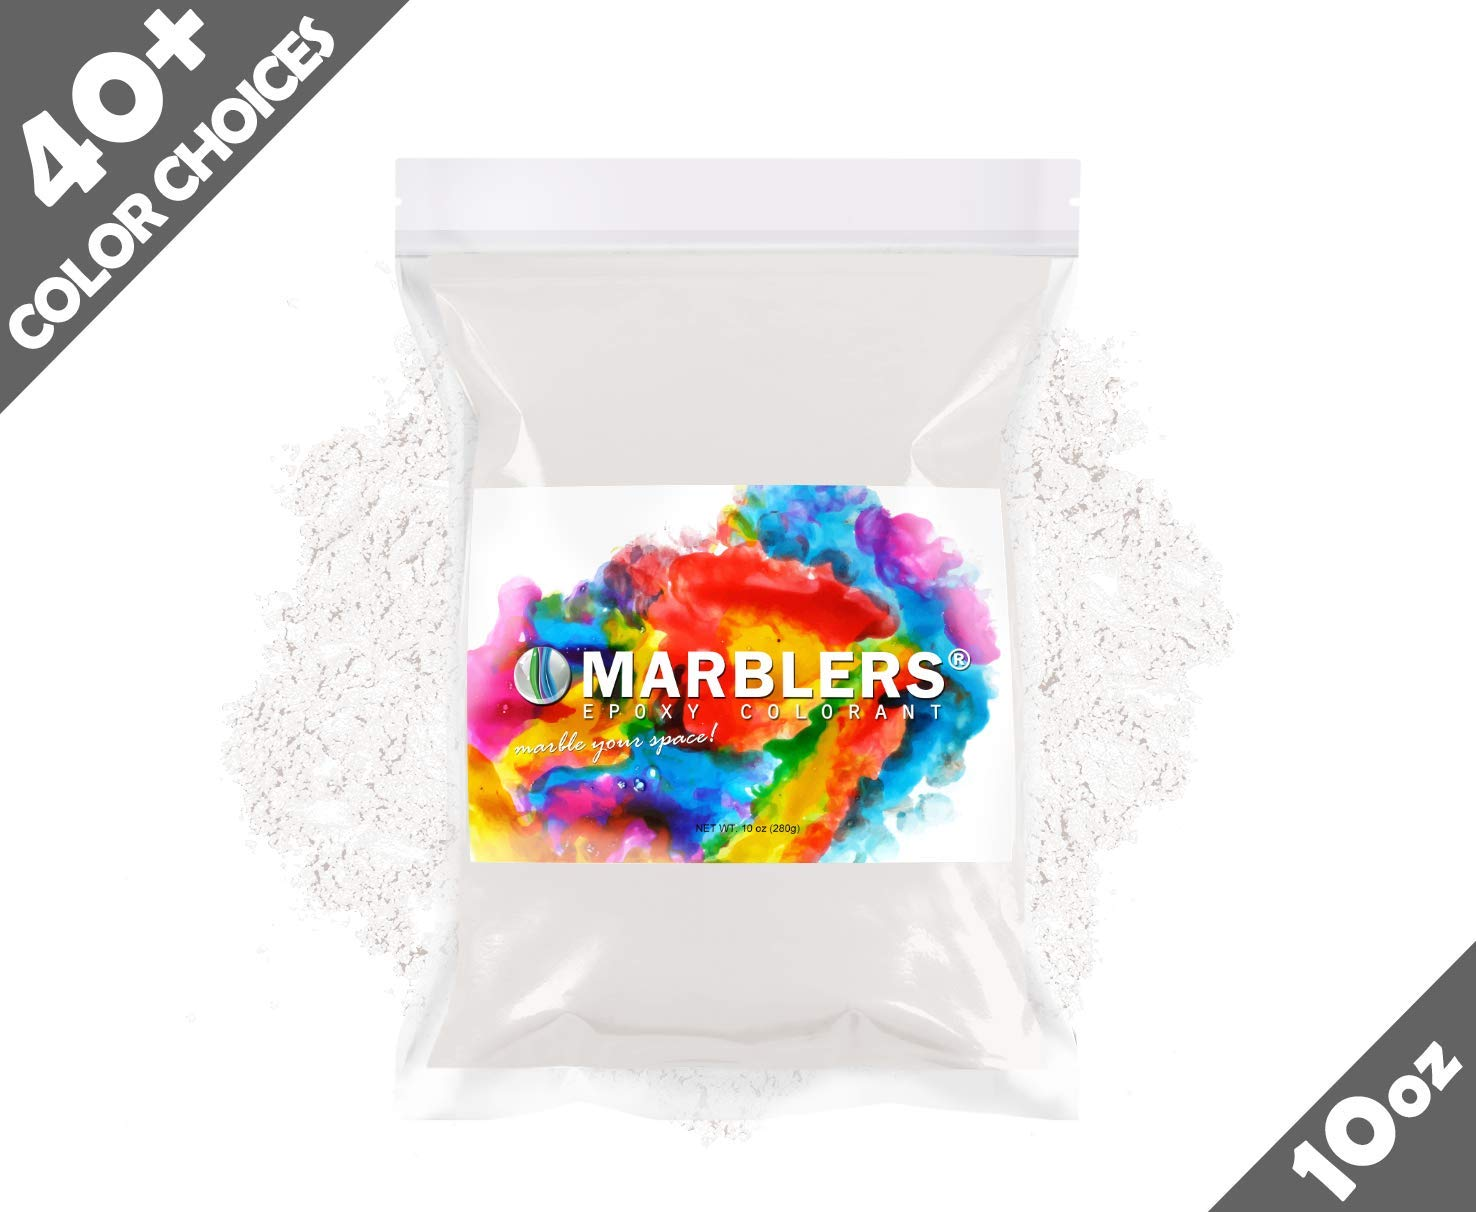 Marblers Powder Colorant 10oz (283g) [Cream White]   Pearlescent Pigment   Tint   Pure Mica Powder for Resin   Dye   Non-Toxic   Great for Epoxy, Soap, Nail Polish, Cosmetics and Bath Bombs